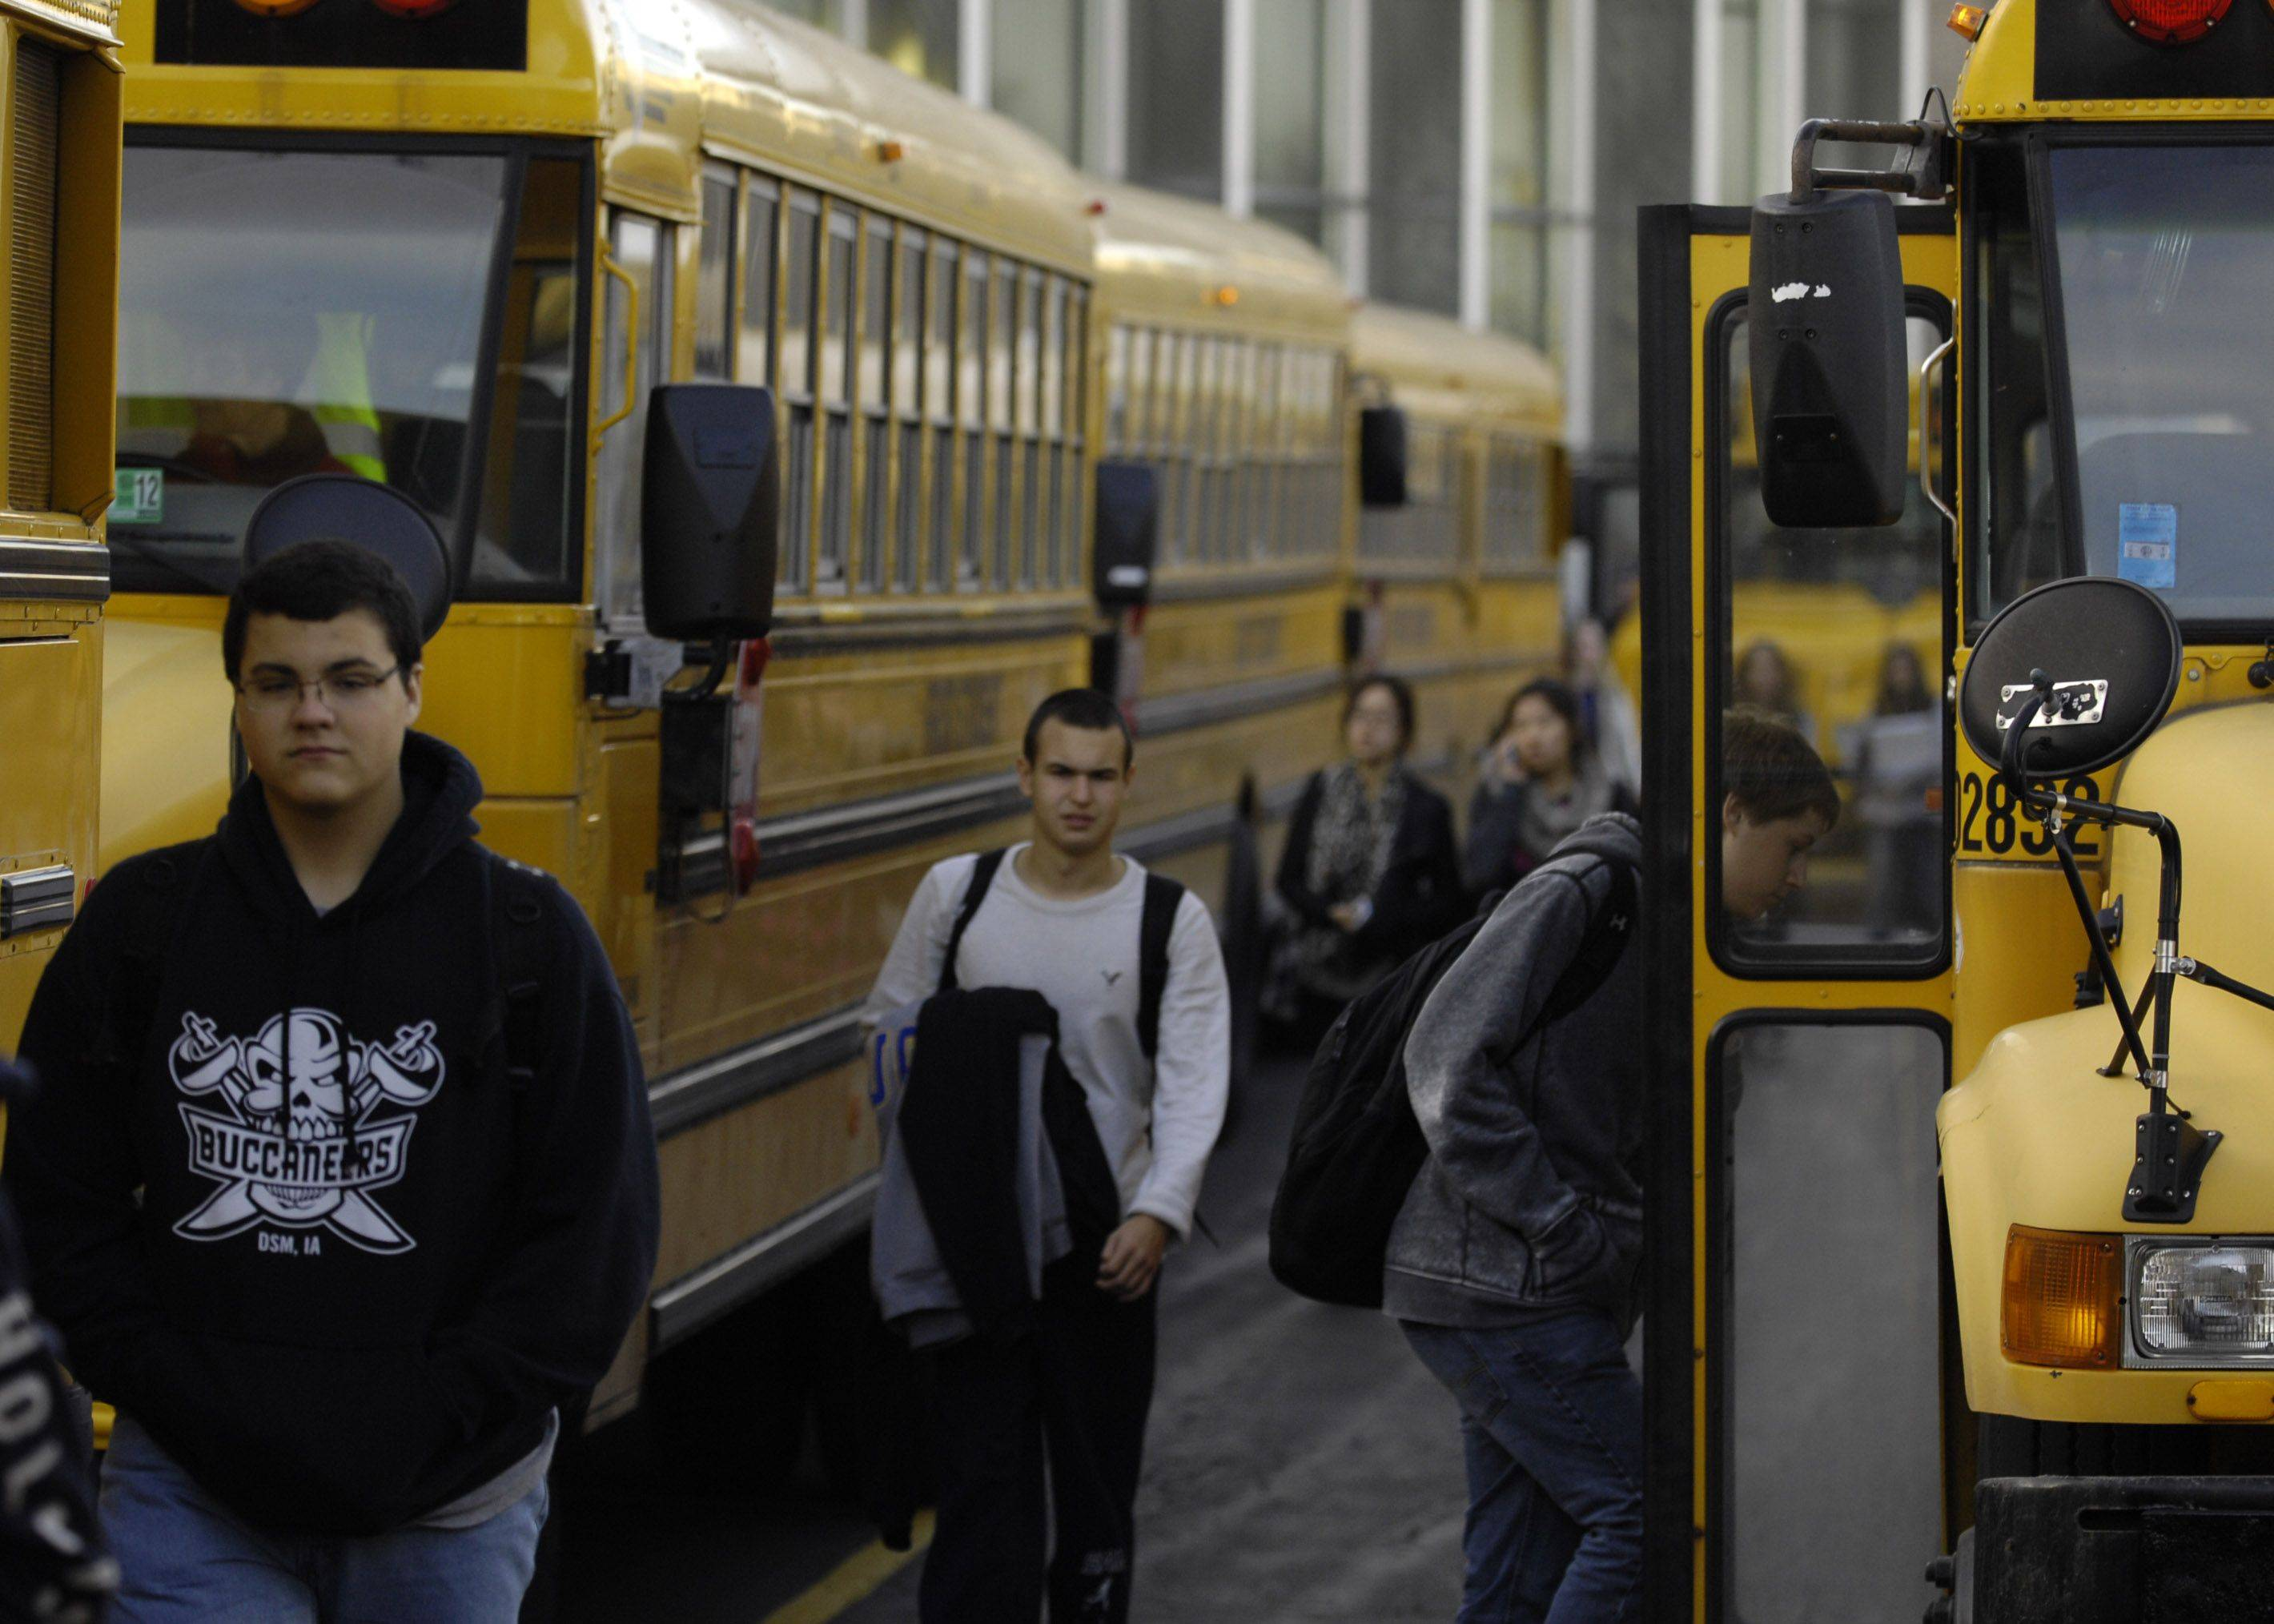 Students get on the bus after school at Stevenson High School. The school is one of the top-ranked in the state on test performance. Only 4.2 percent of Stevenson students are considered low-income.